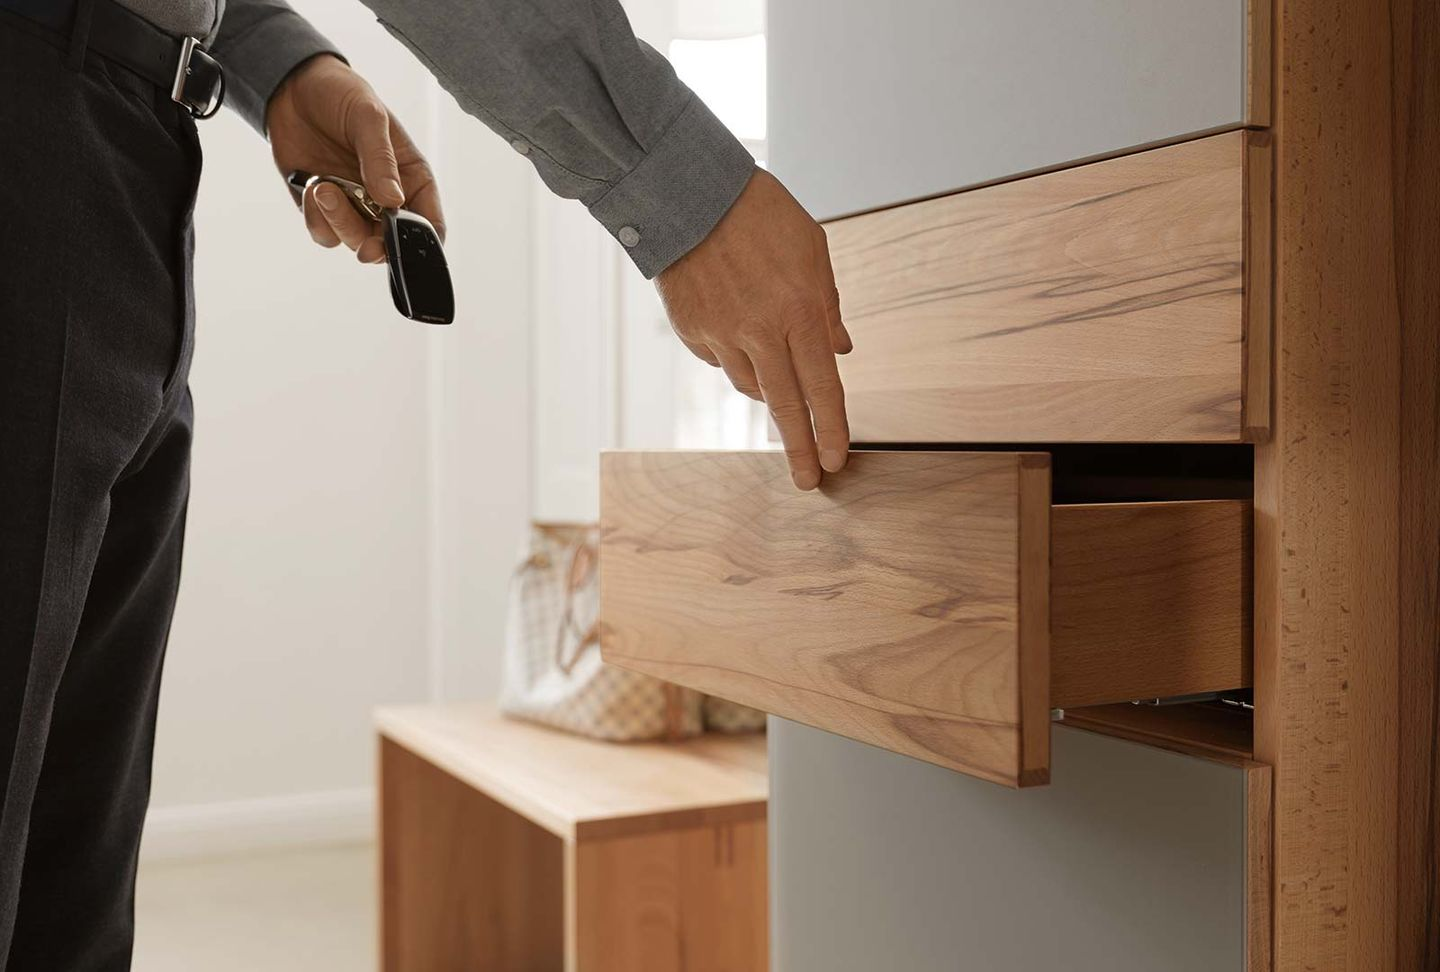 cubus solid coat rack with drawers